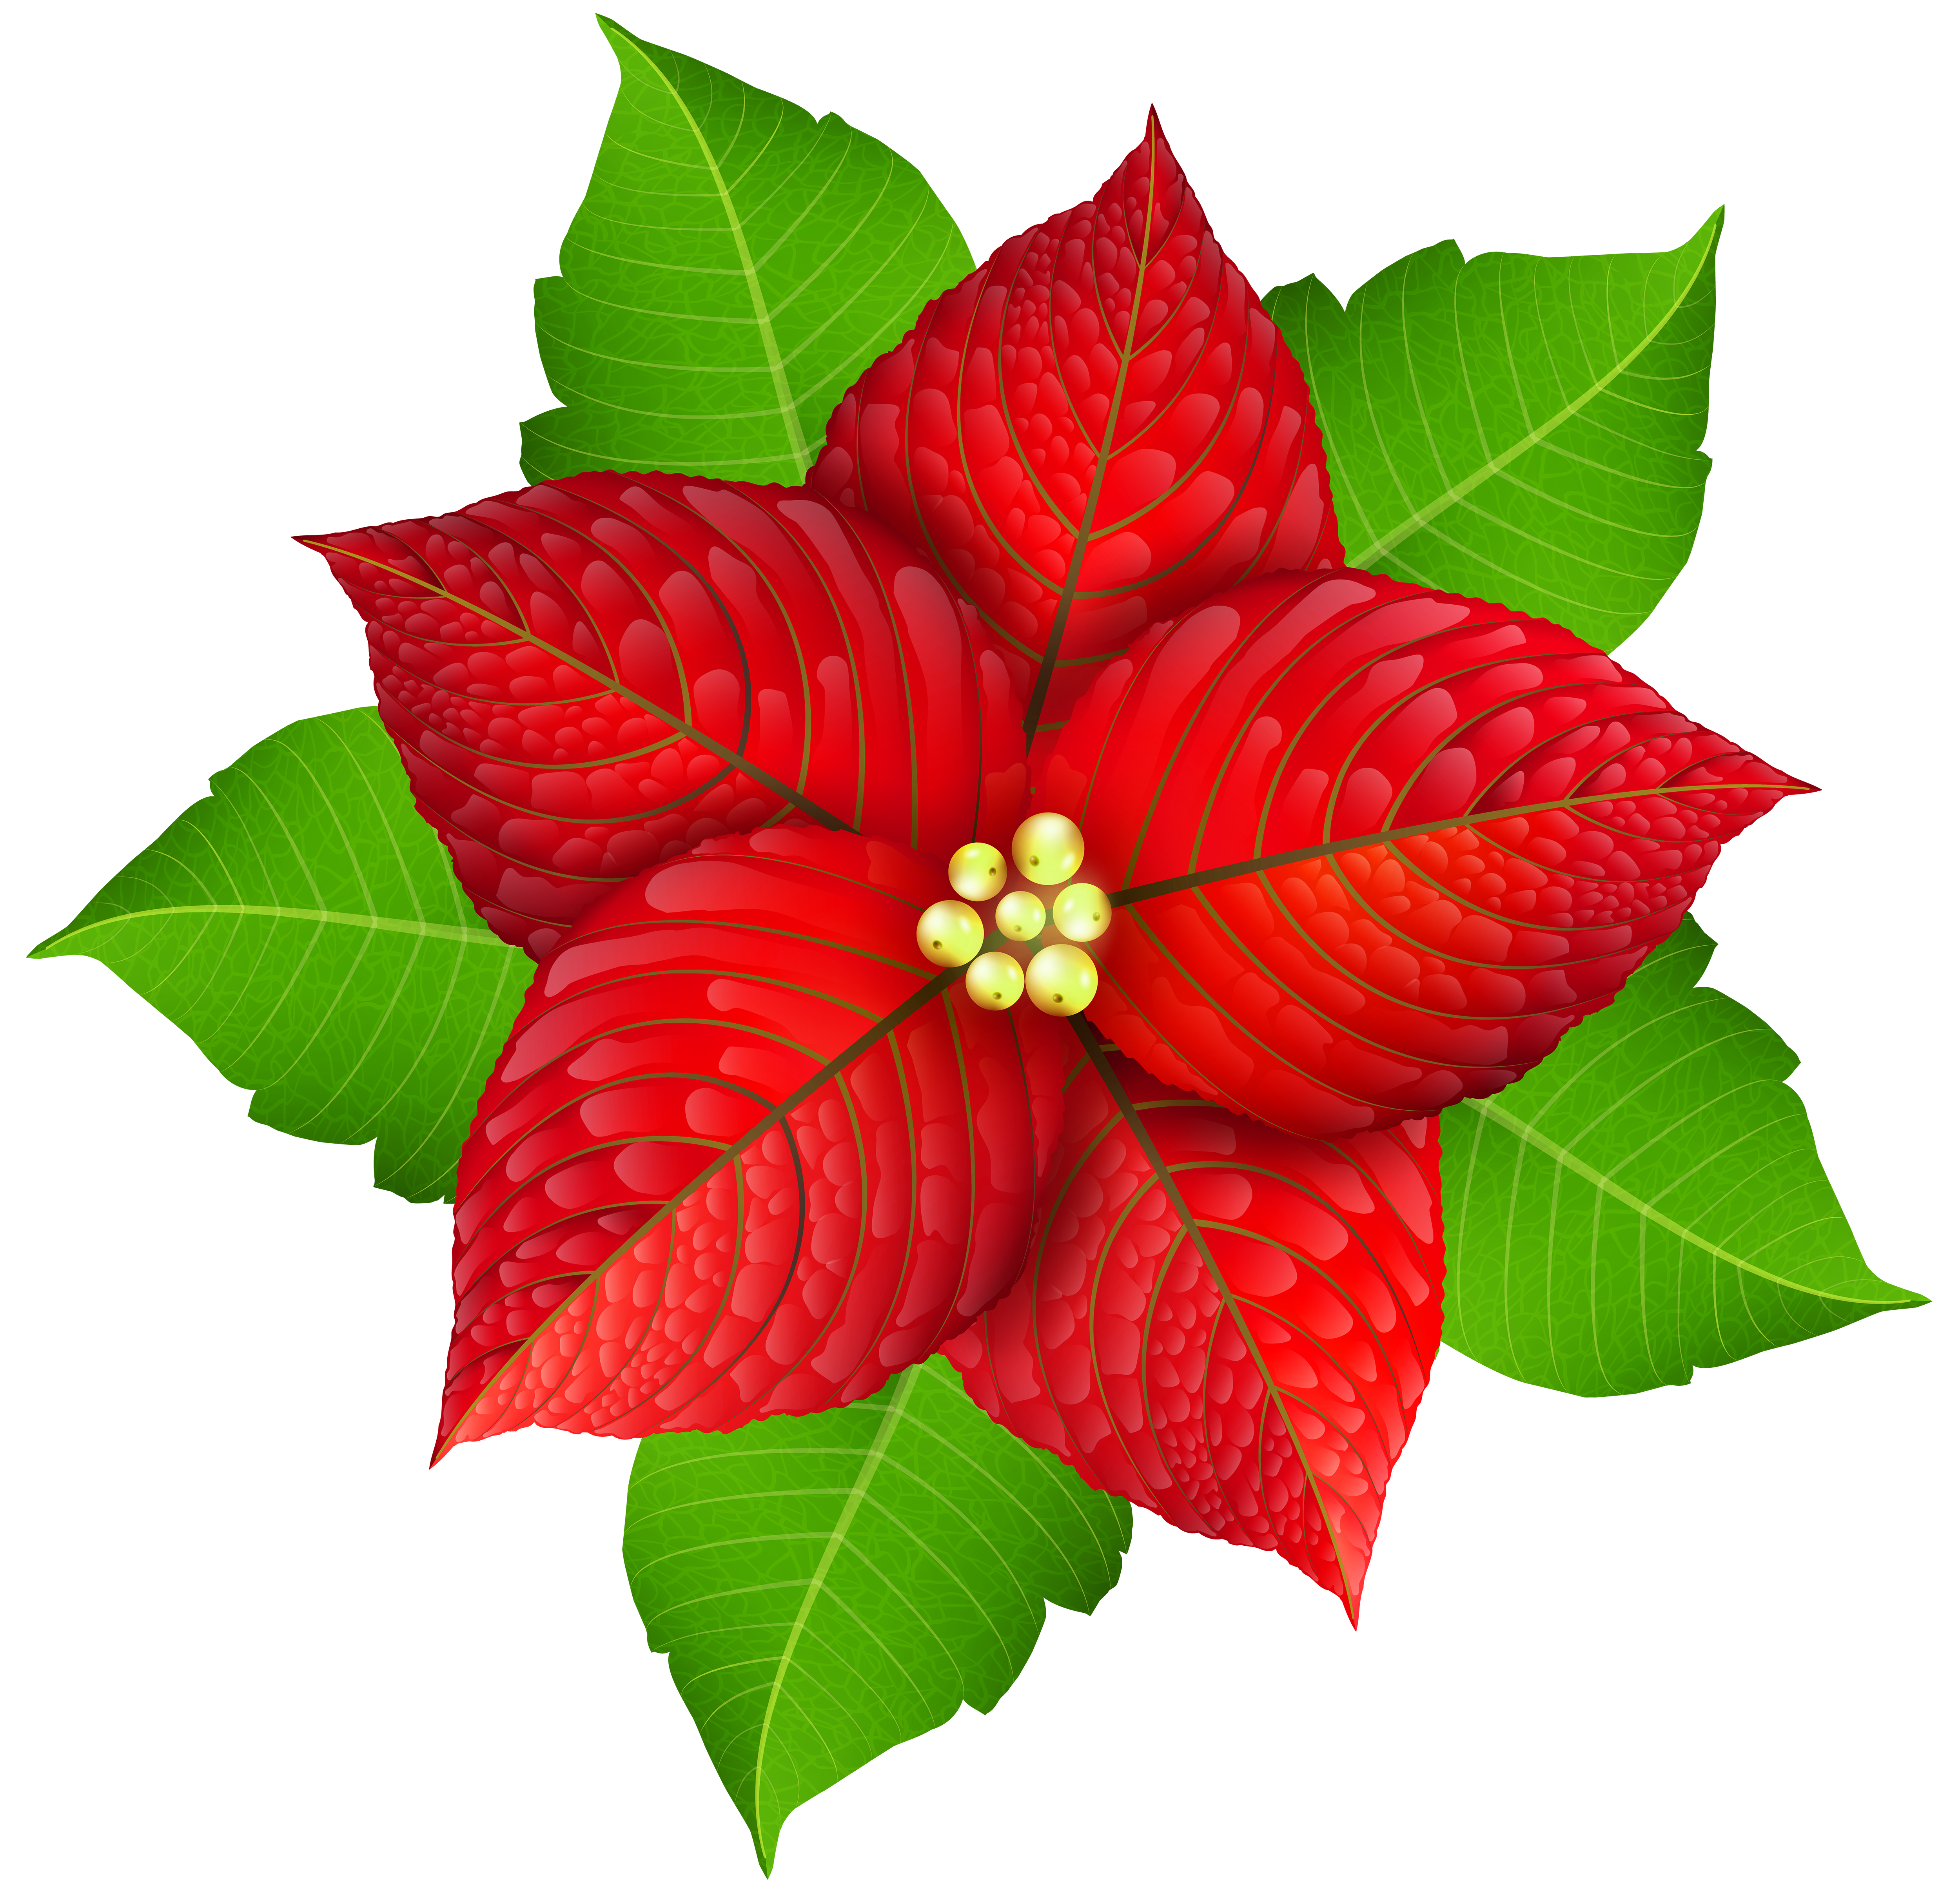 Poinsettia clipart transparent background. Christmas png image gallery